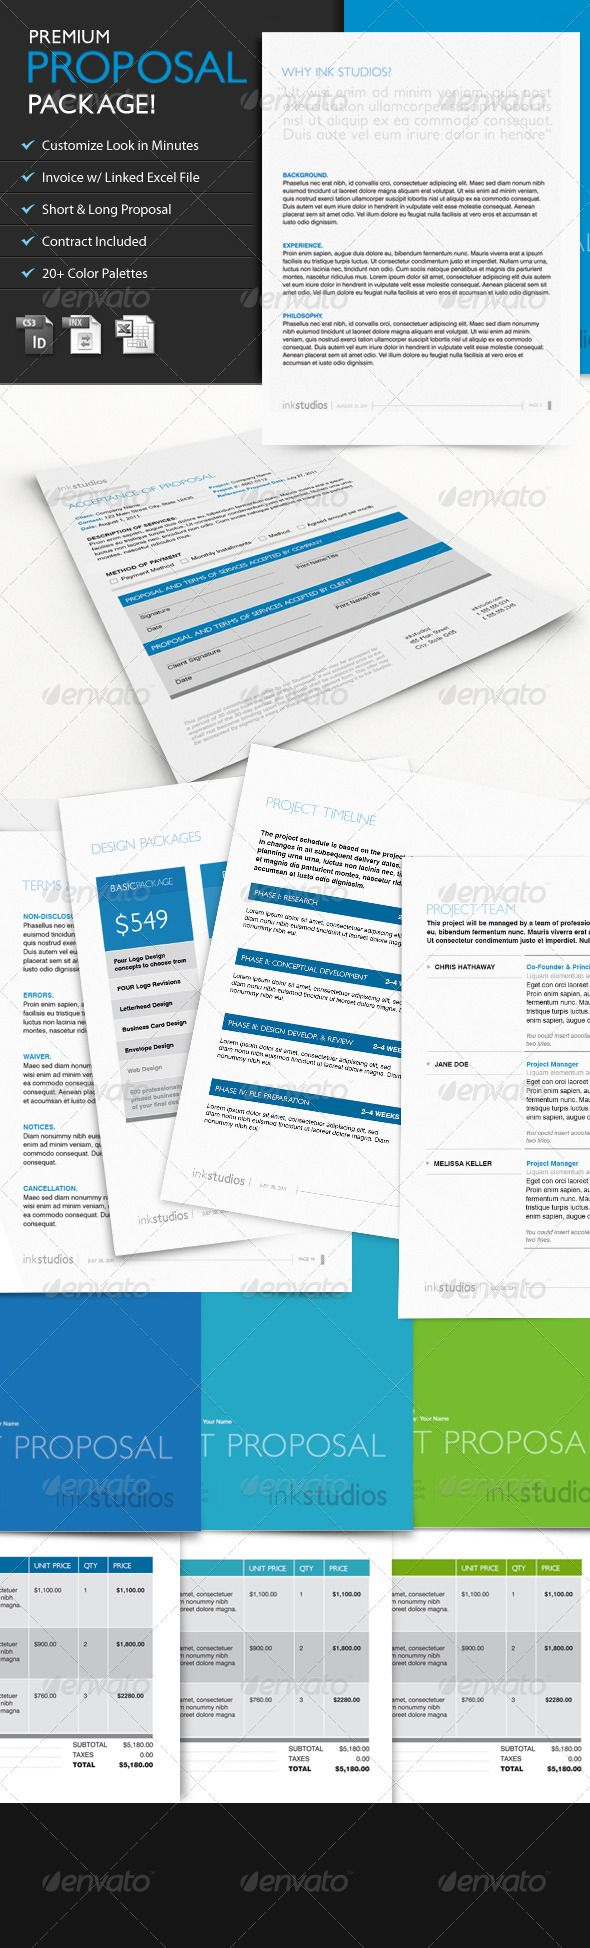 Premium Proposal Template - w/ Contract & Invoice - GraphicRiver Item for Sale